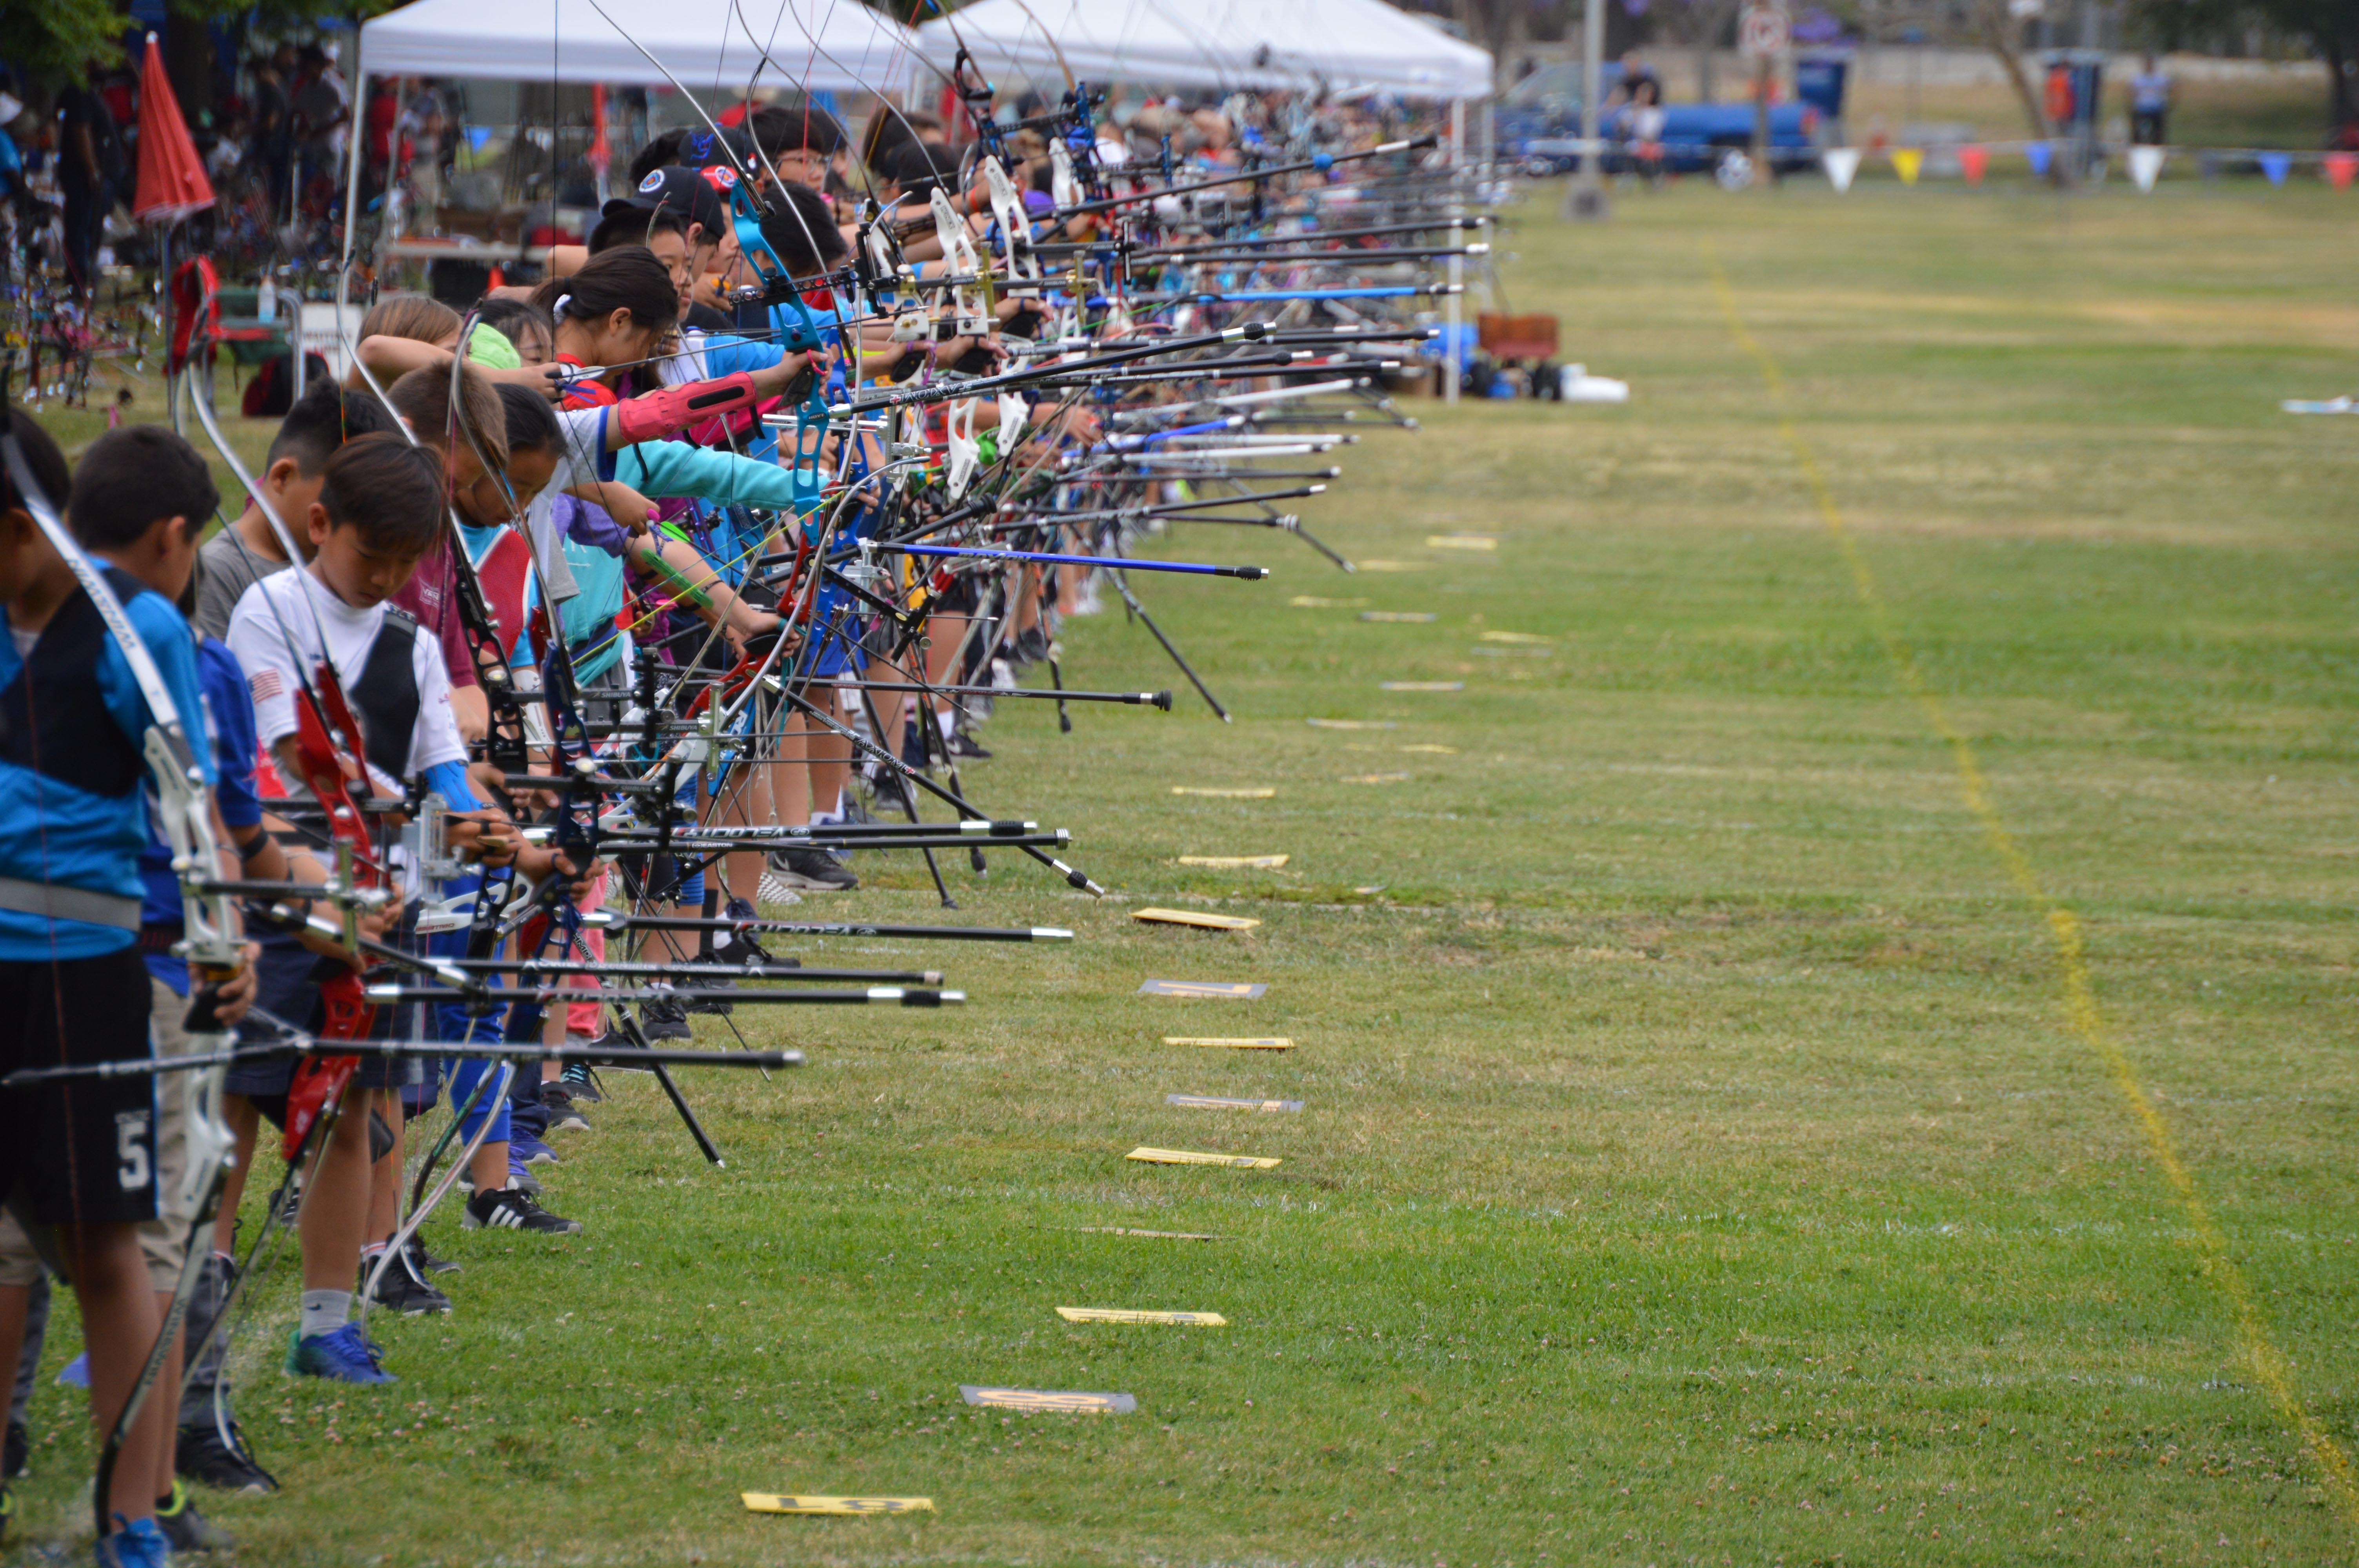 46th California State Outdoor Archery Championship 2017